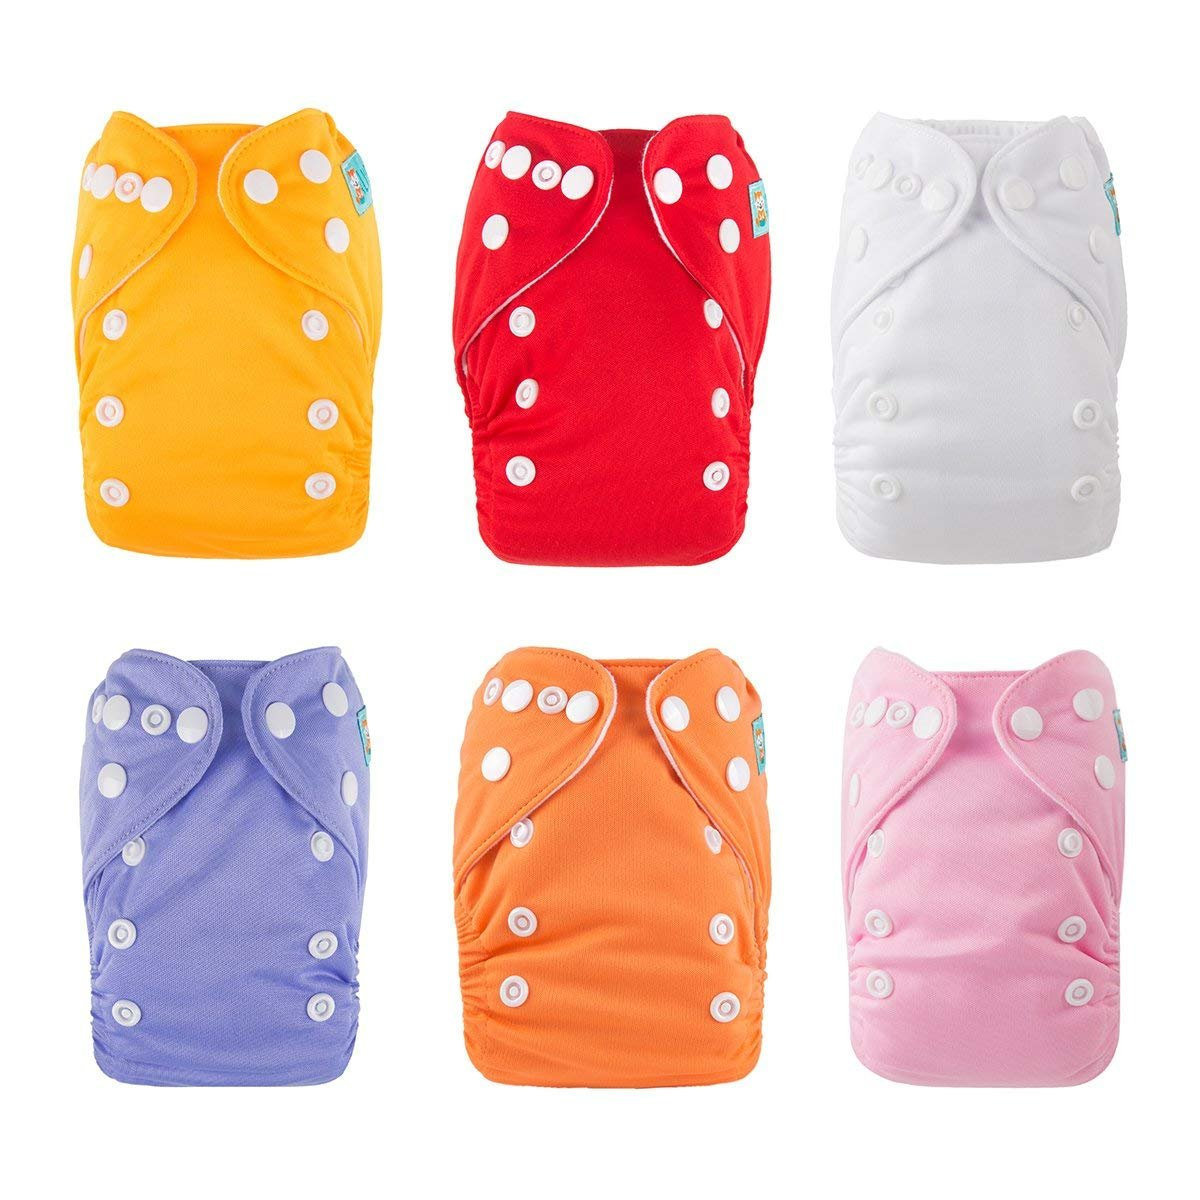 ALVABABY Cloth Diapers Reuseable Washable Pocket Nappy 6 PCS + 12 Inserts 6SVB03-308-CA